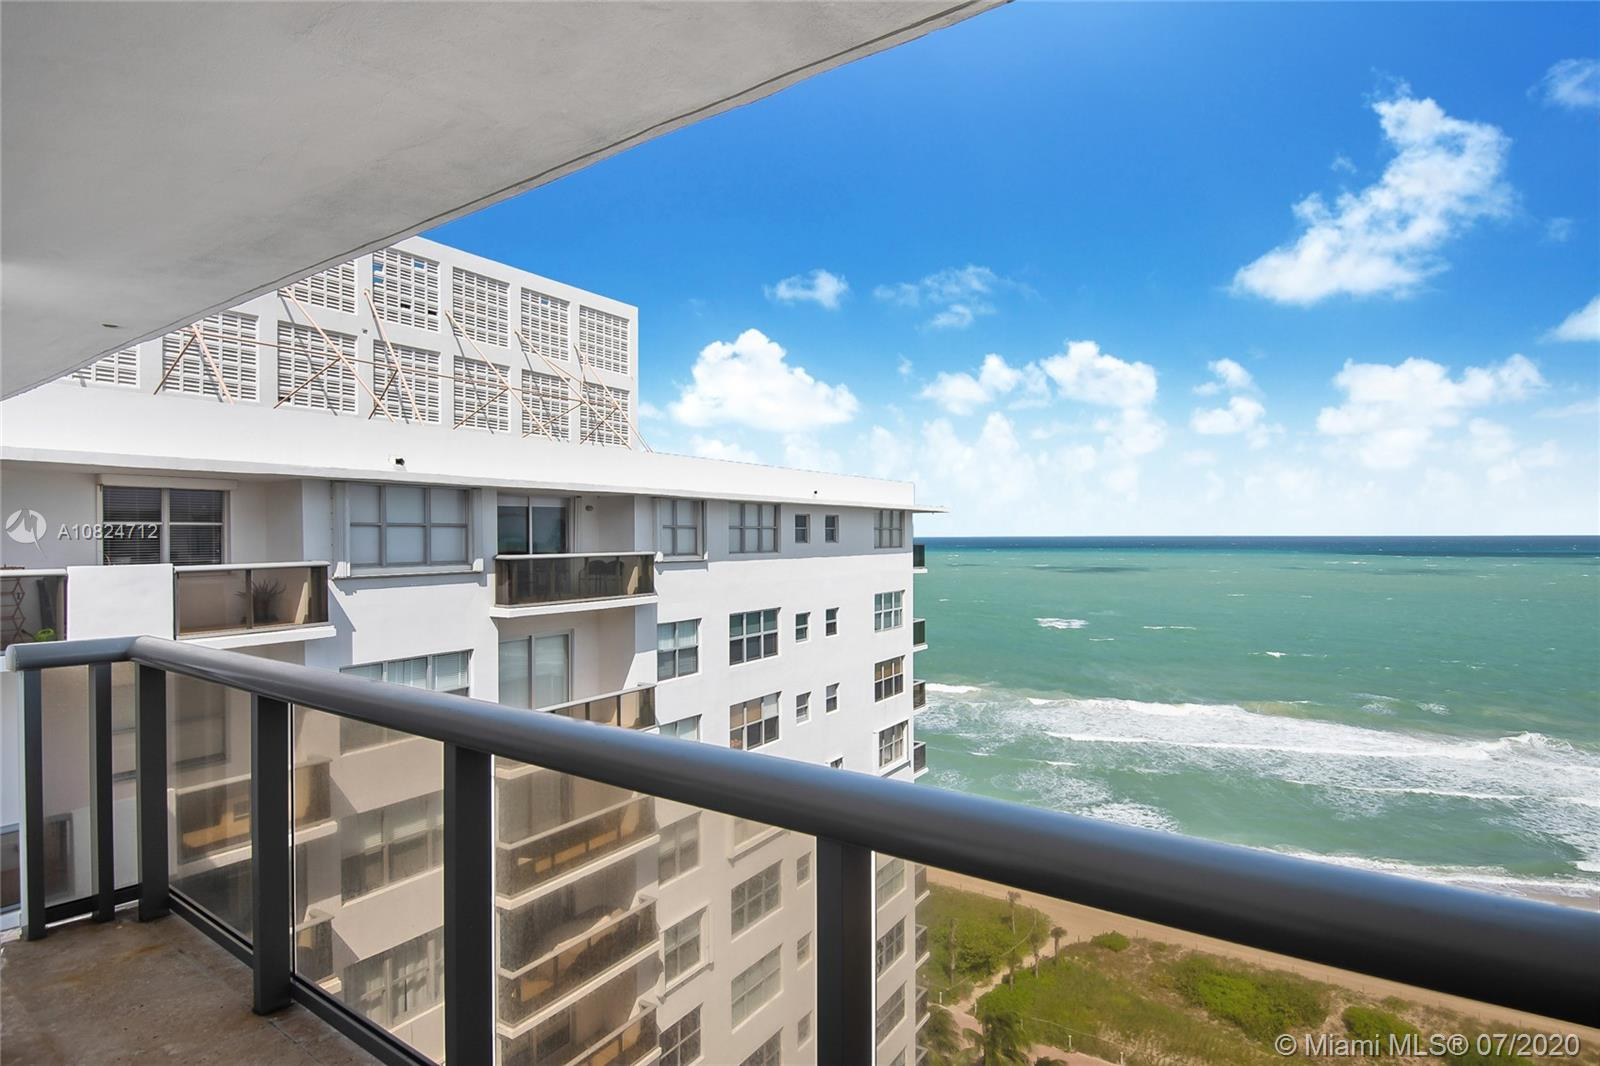 Spectacular spacious Pent House with panoramic ocean views from every room with direct beach access in the heart of Miami Beach * 5 minutes to South Beach and 15 minutes to Wynnewood * 2 units converted into one spacious 2023 Sq. Ft. Unit * A true palace in the sky * Luxuriously and totally remodeled with beautiful white marble floors, 2 balconies, incredible new open kitchen with top of the line appliances, 2 freezers, wine cooler, double oven and more * Large master bedroom with 2 walk in closets and huge master bath with tub & shower * Living room and dining area make a  fabulous entertaining space * 2 extra storage spaces * Extra room for den, office or maid's quarters *  24 Hr. Security *Valet Parking *Concierge * BBQ Area * Convenience Store,gym, playground, game room and more!